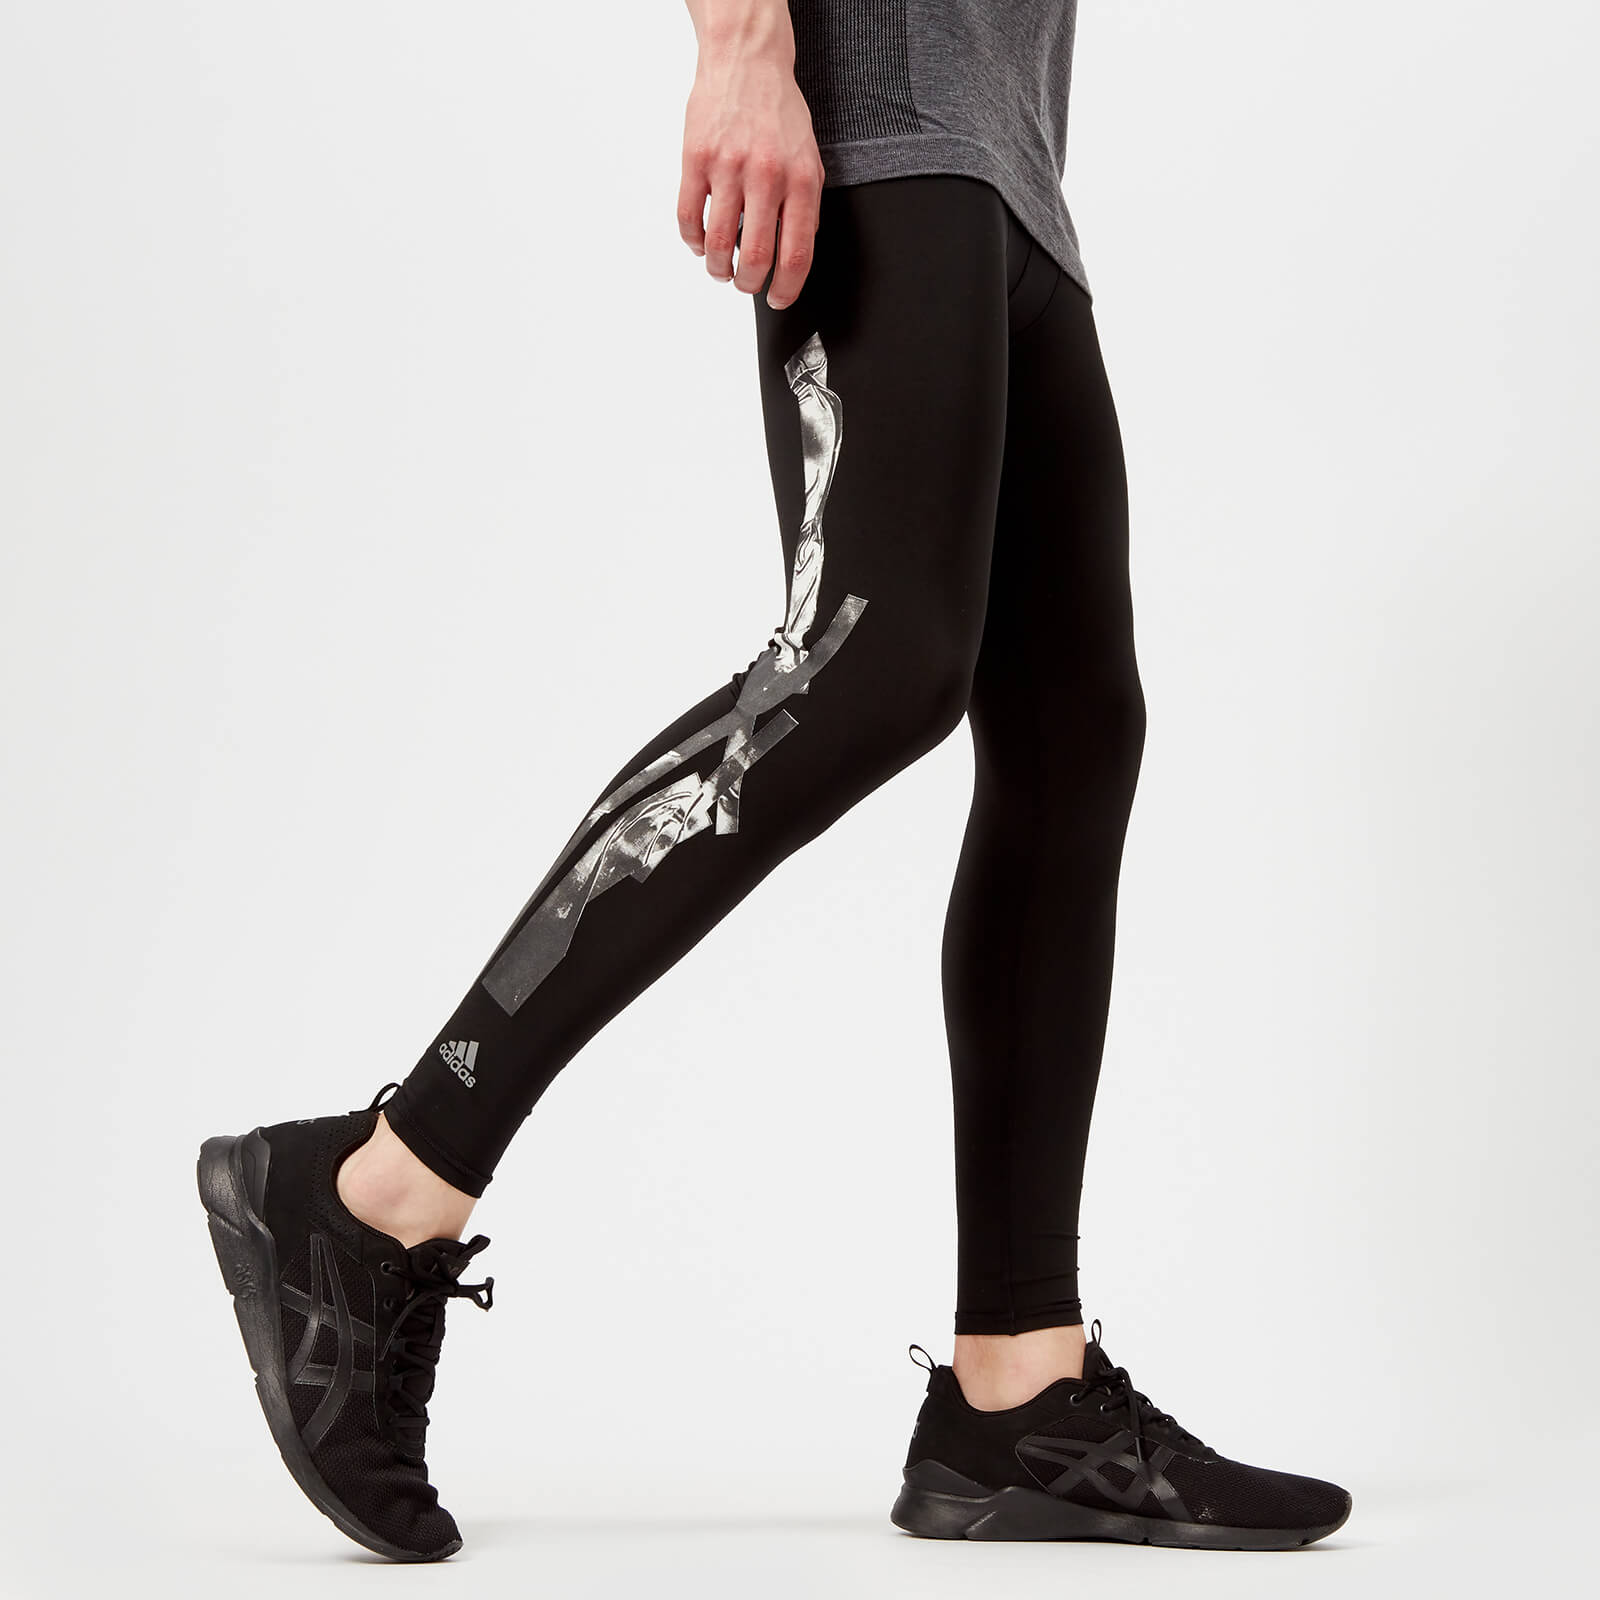 57194c1da63 adidas by kolor Men's Techfit Tights - Black - Free UK Delivery over £50